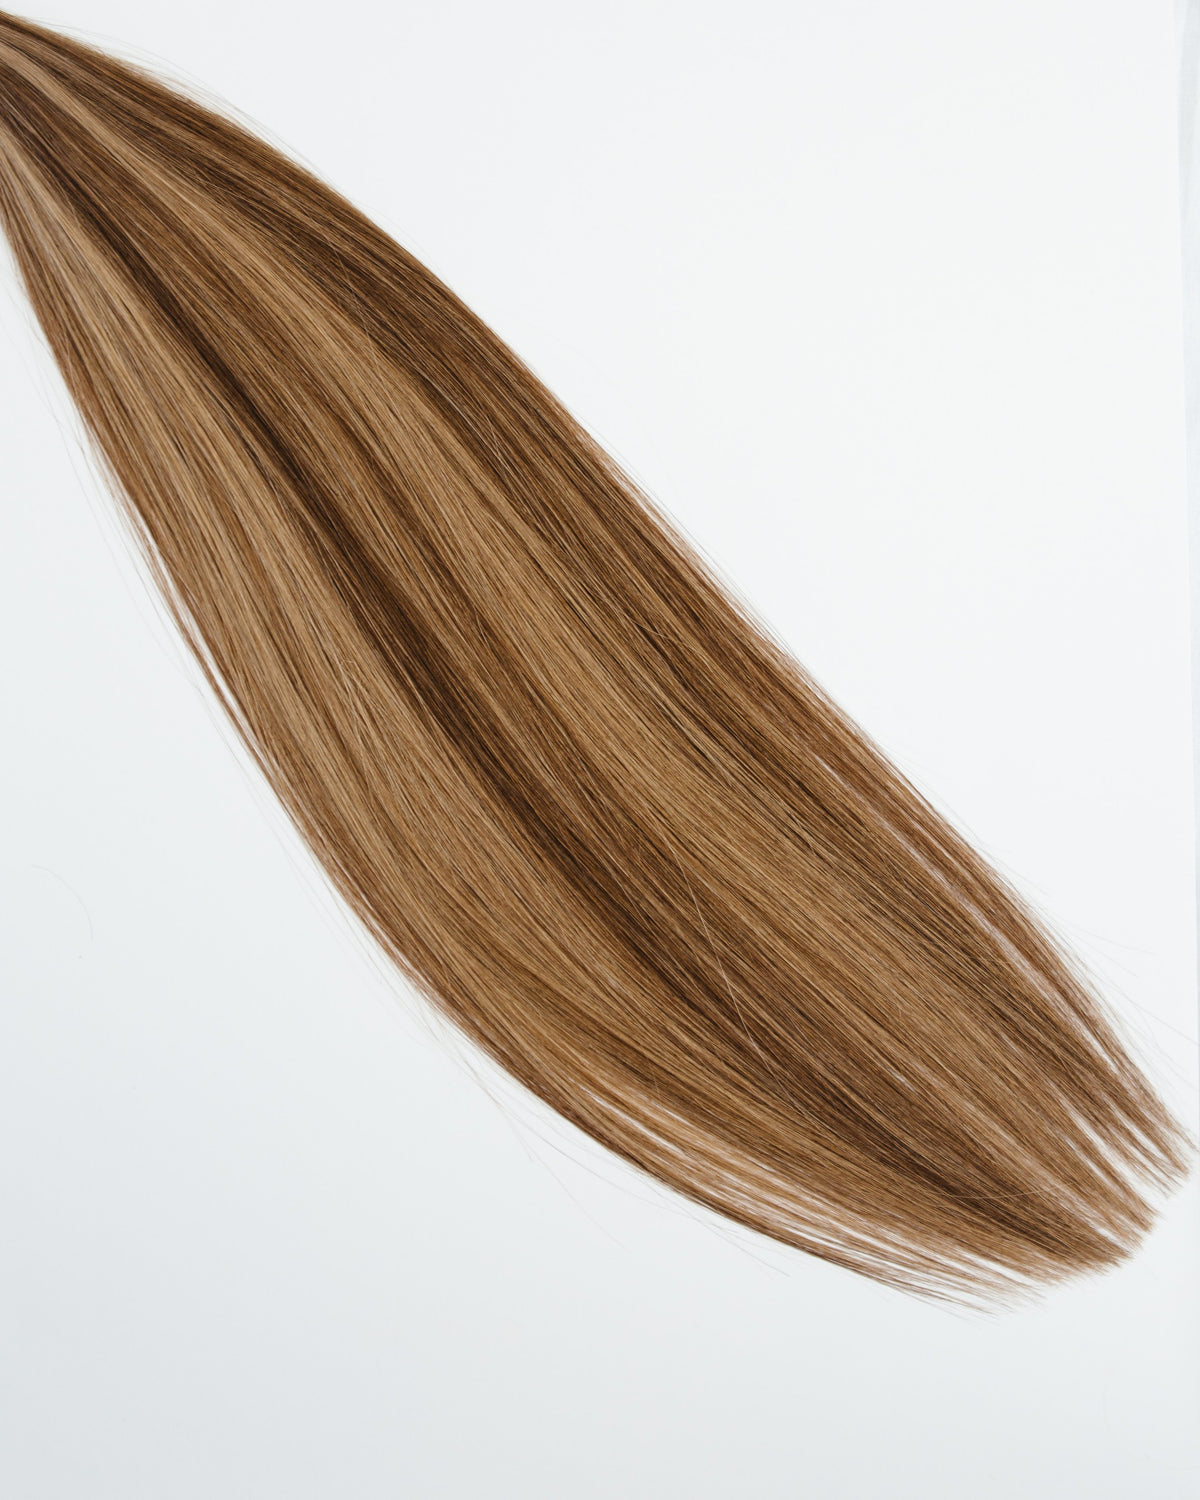 Laced Hair Clip-In Extensions Dimensional #4/8 (Cappuccino)